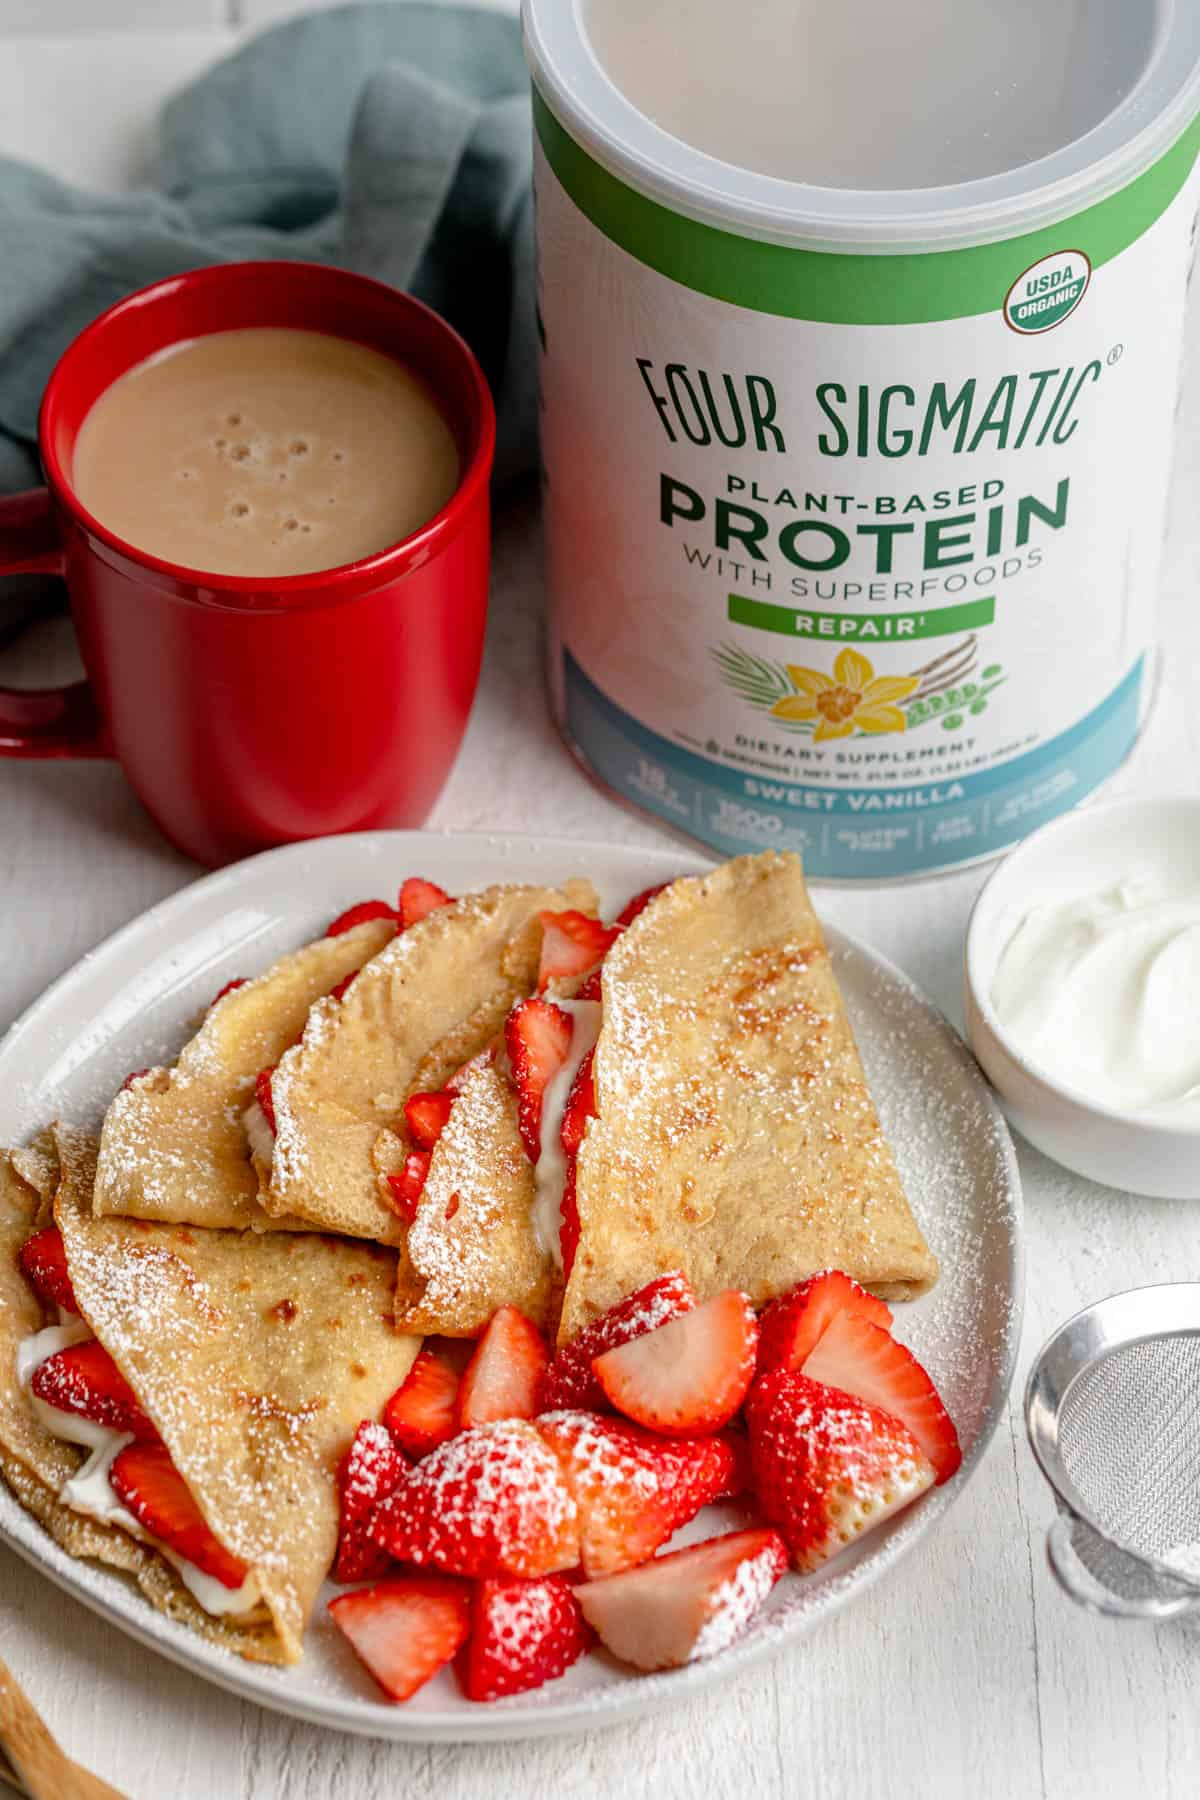 Protein crepes on a plate with strawberries and cream, red coffee mug in background and Four Sigmatic protein powder in background